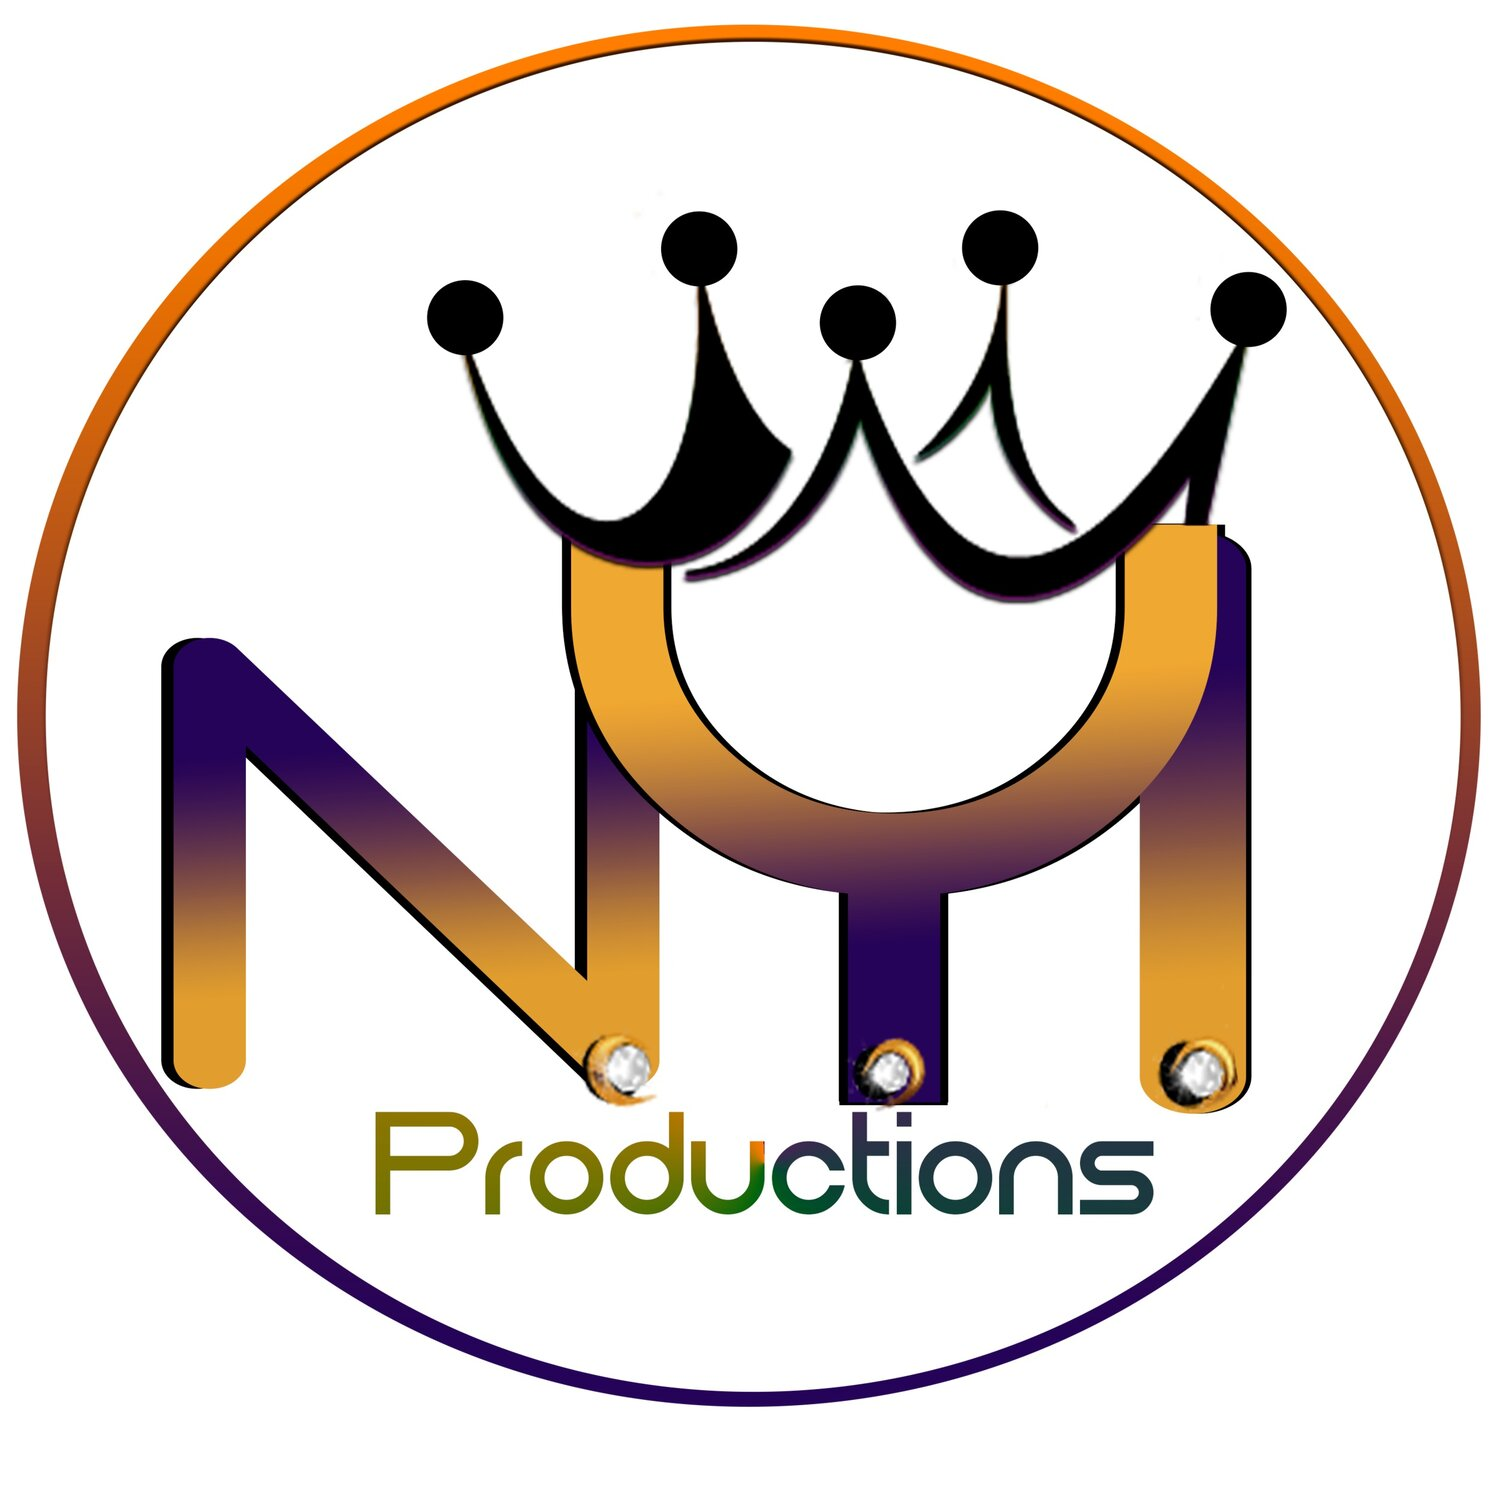 N.Y.I Productions LLC